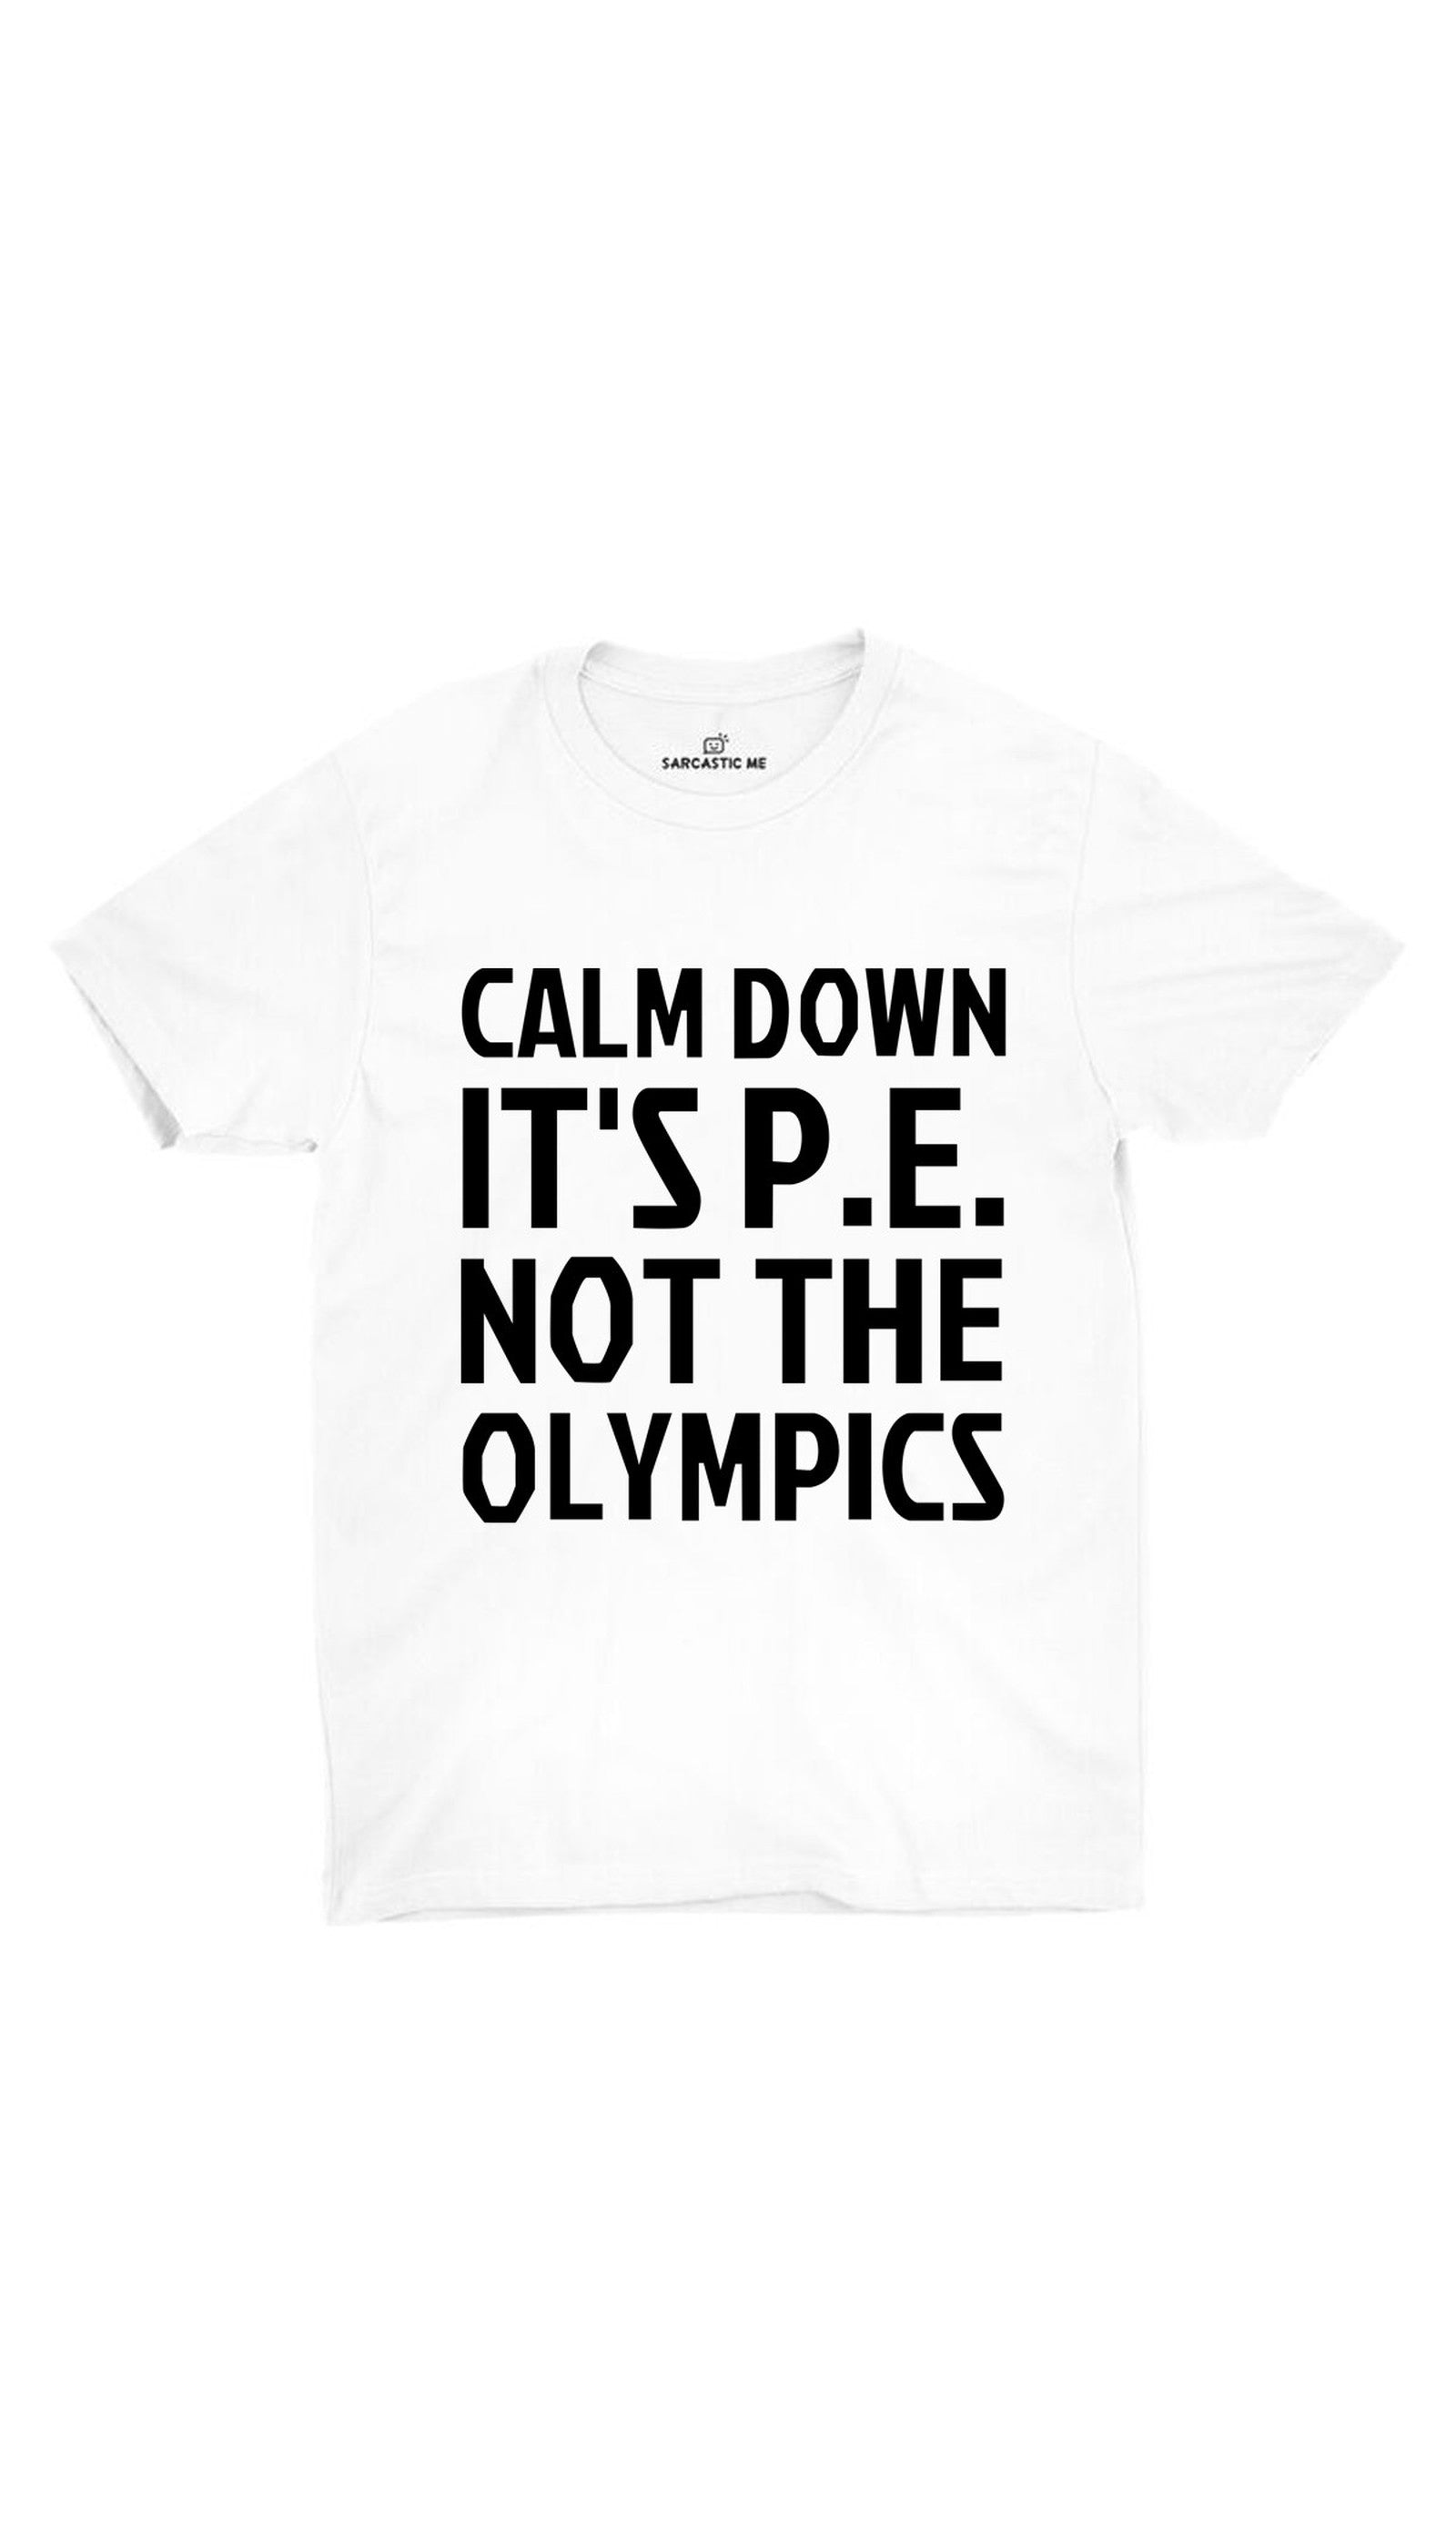 Calm Down It's P.E Not The Olympics White Unisex T-shirt | Sarcastic ME